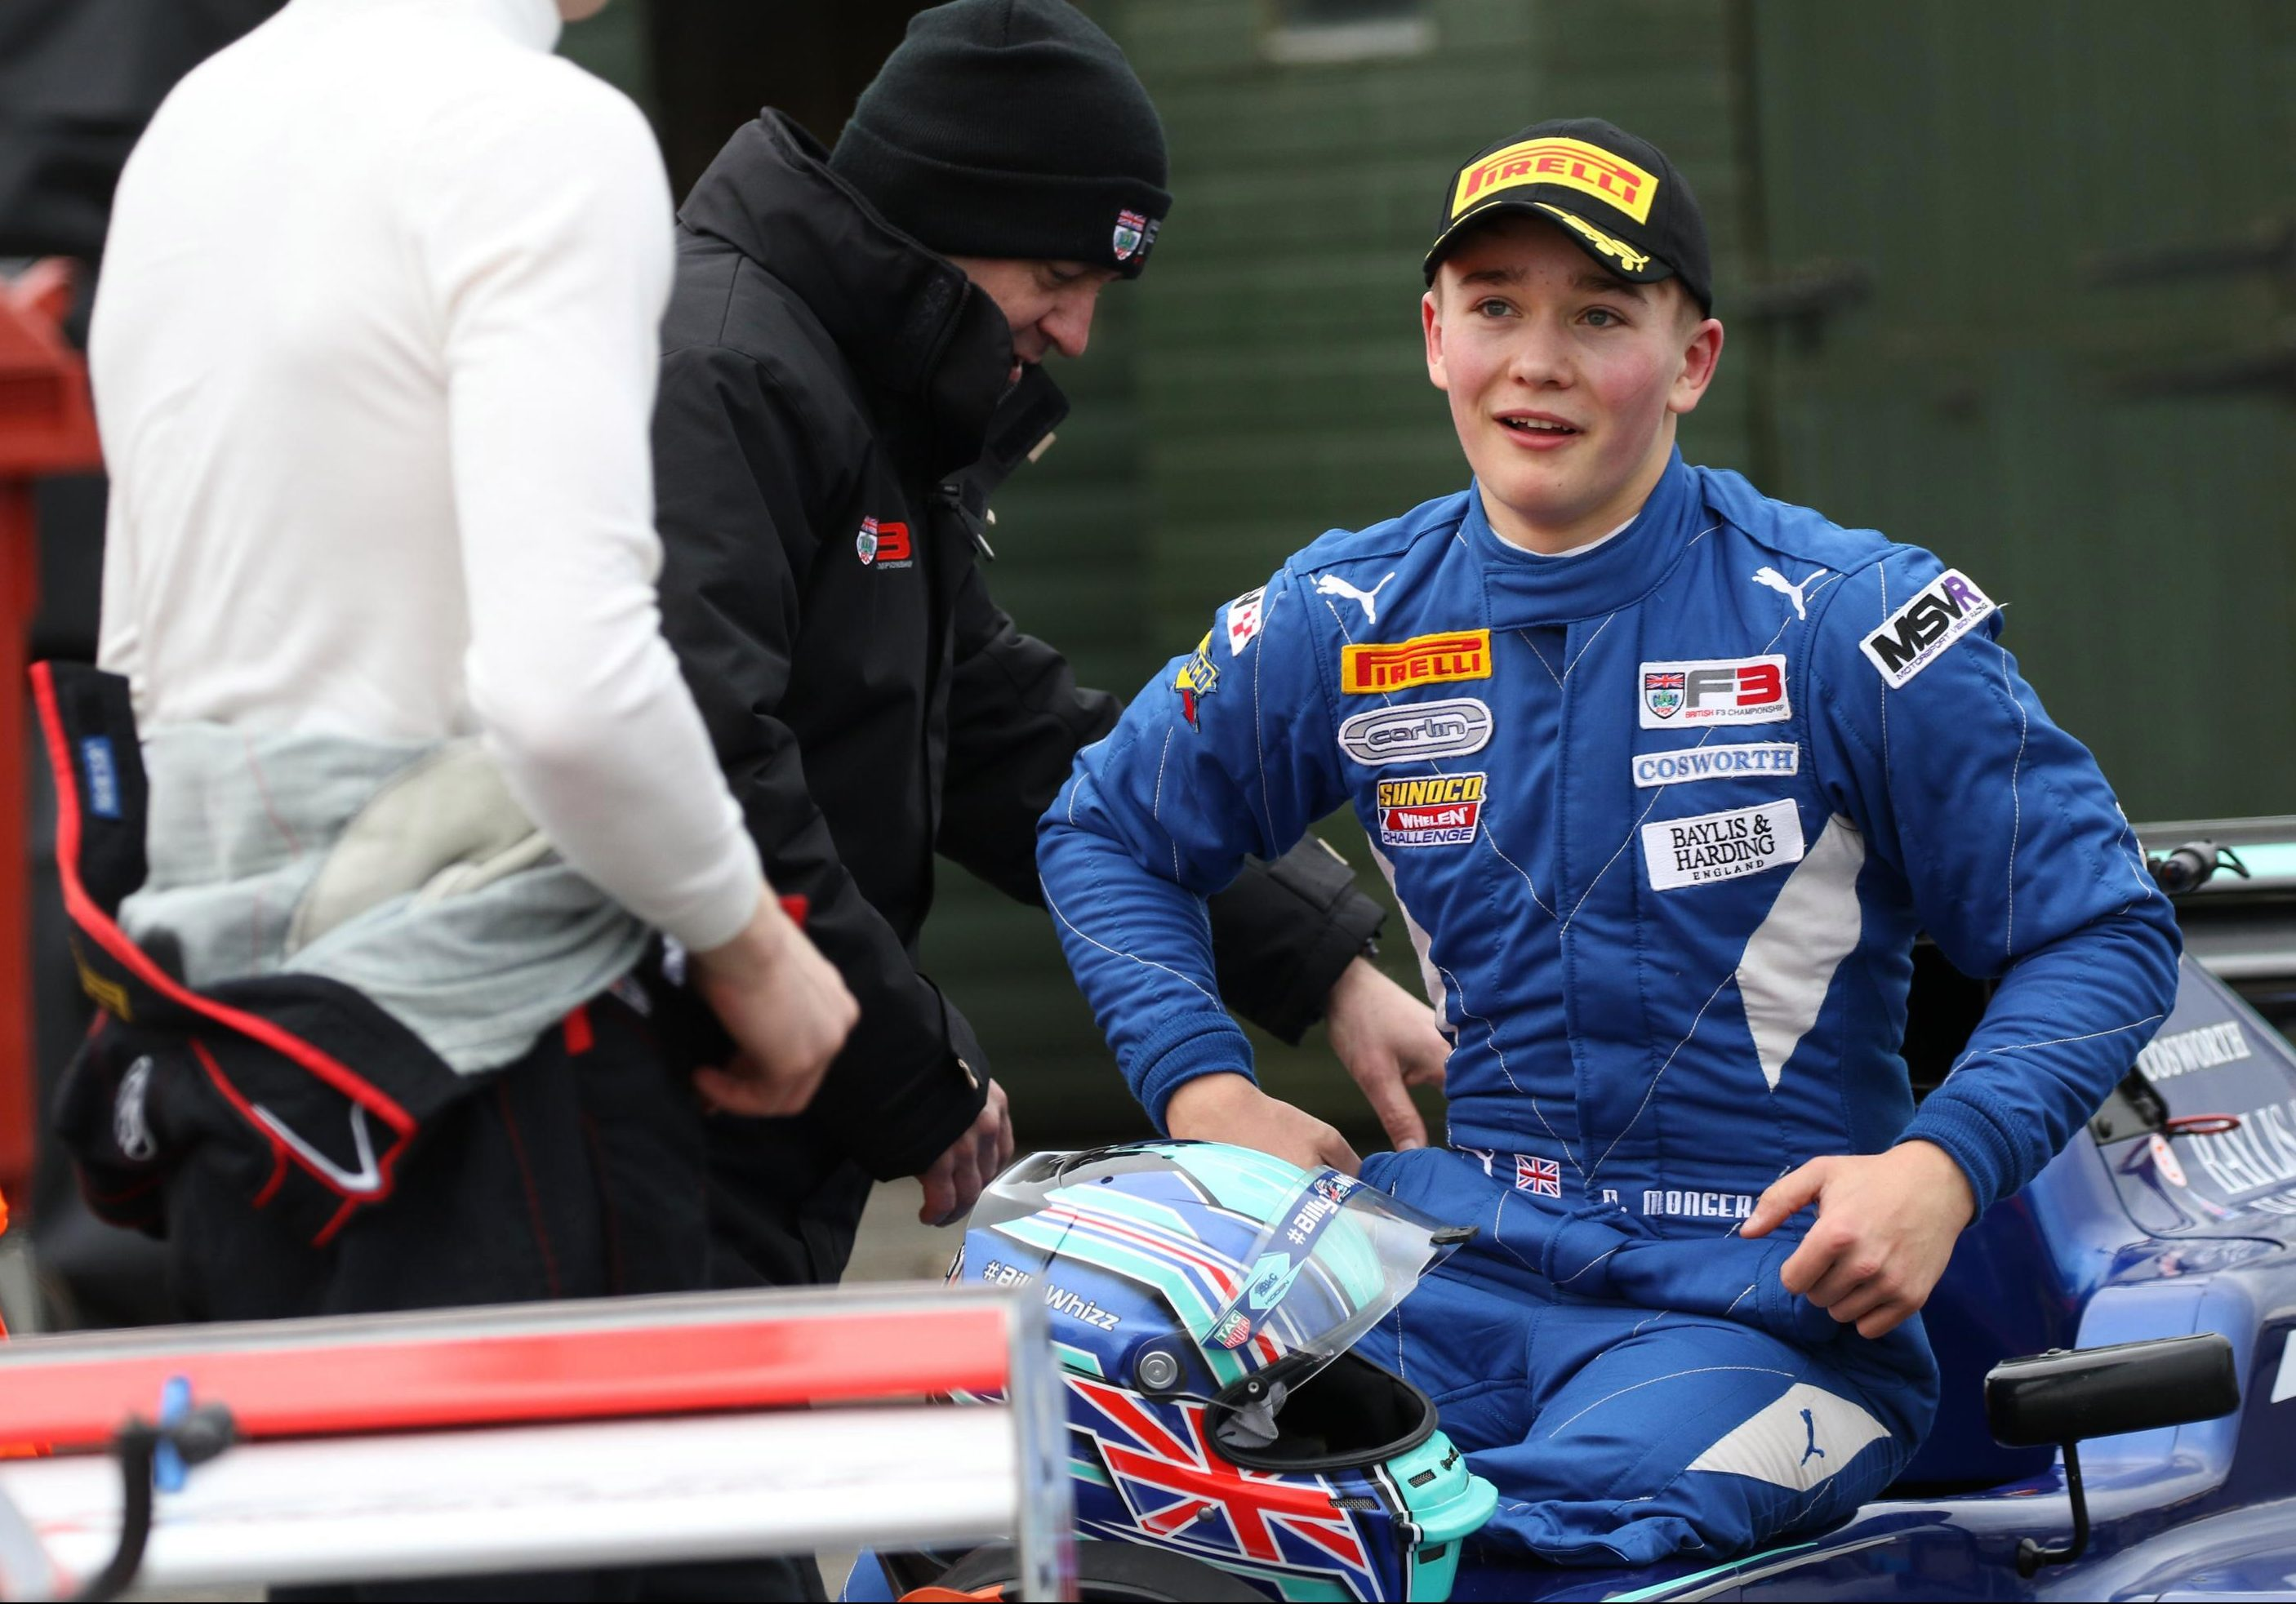 Billy Monger must be delighted with his return to racing - and a podium debut